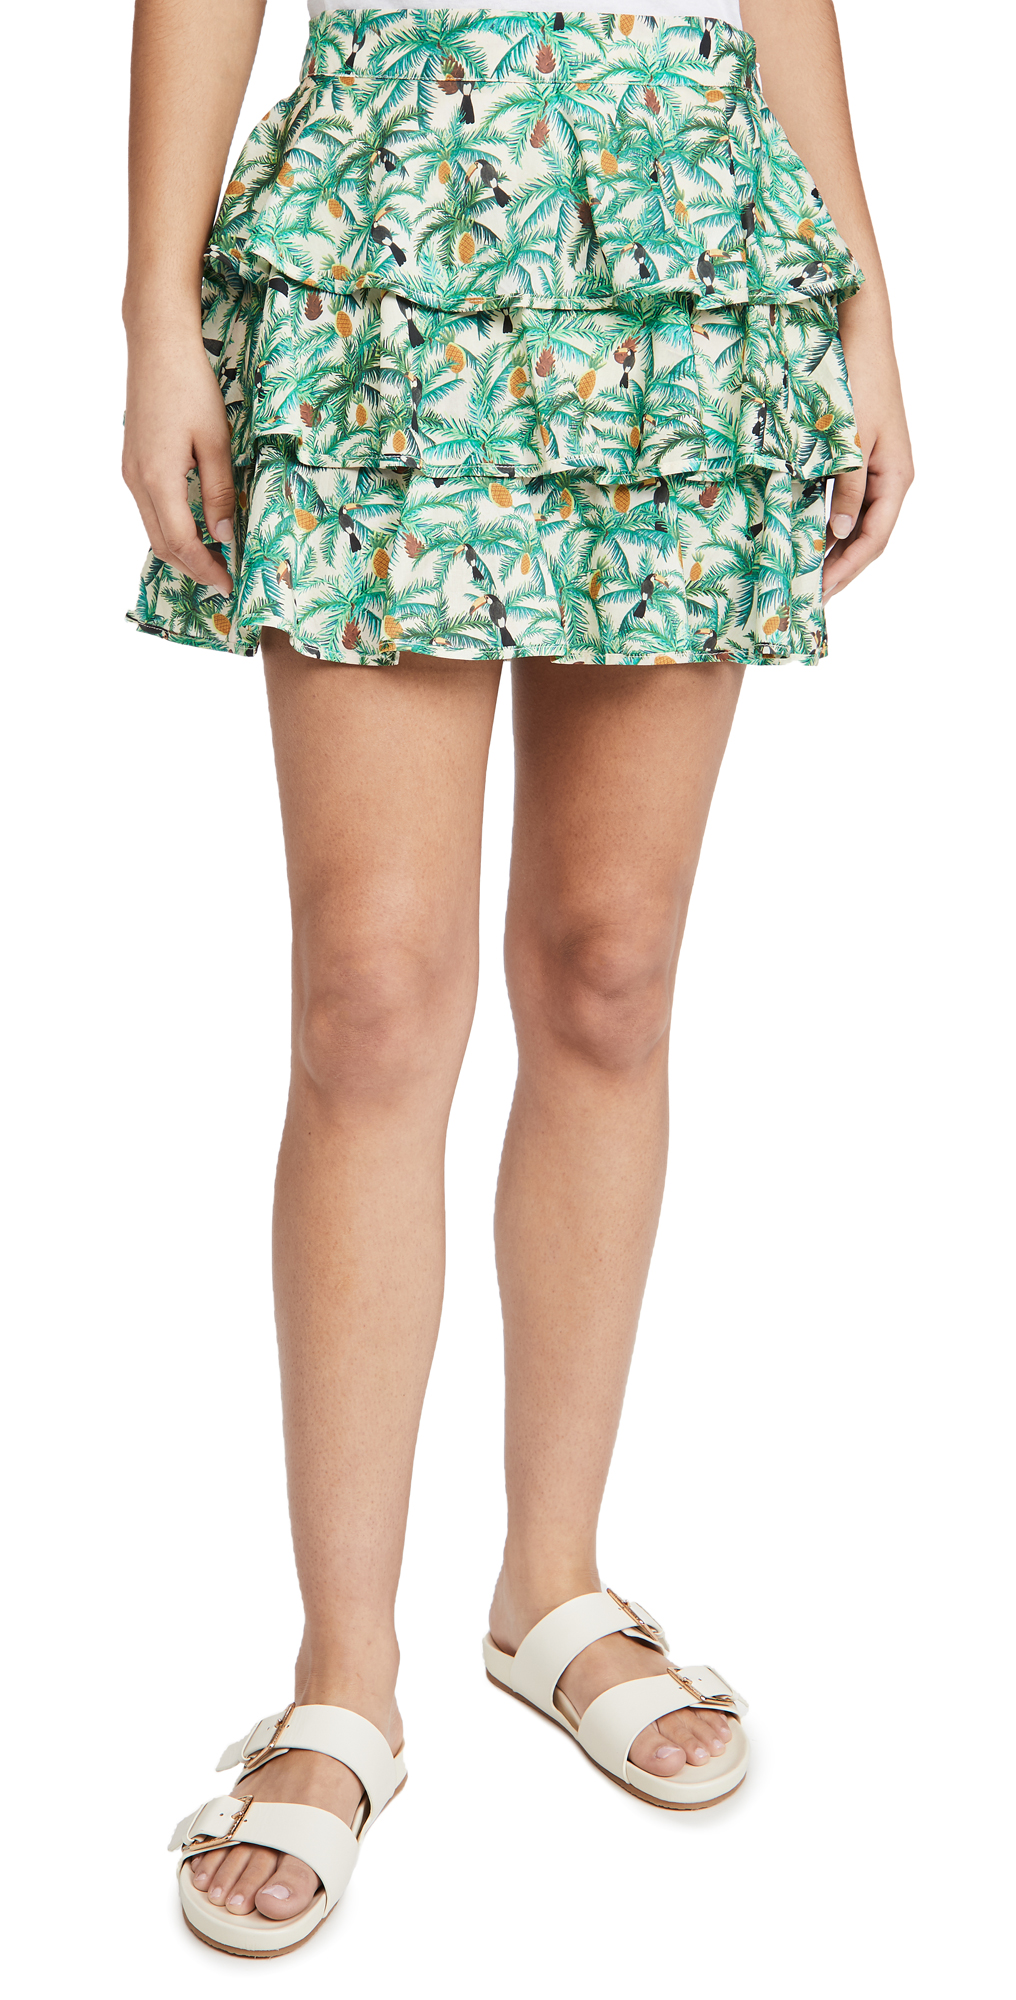 FARM Rio Mini Toucans Layered Miniskirt